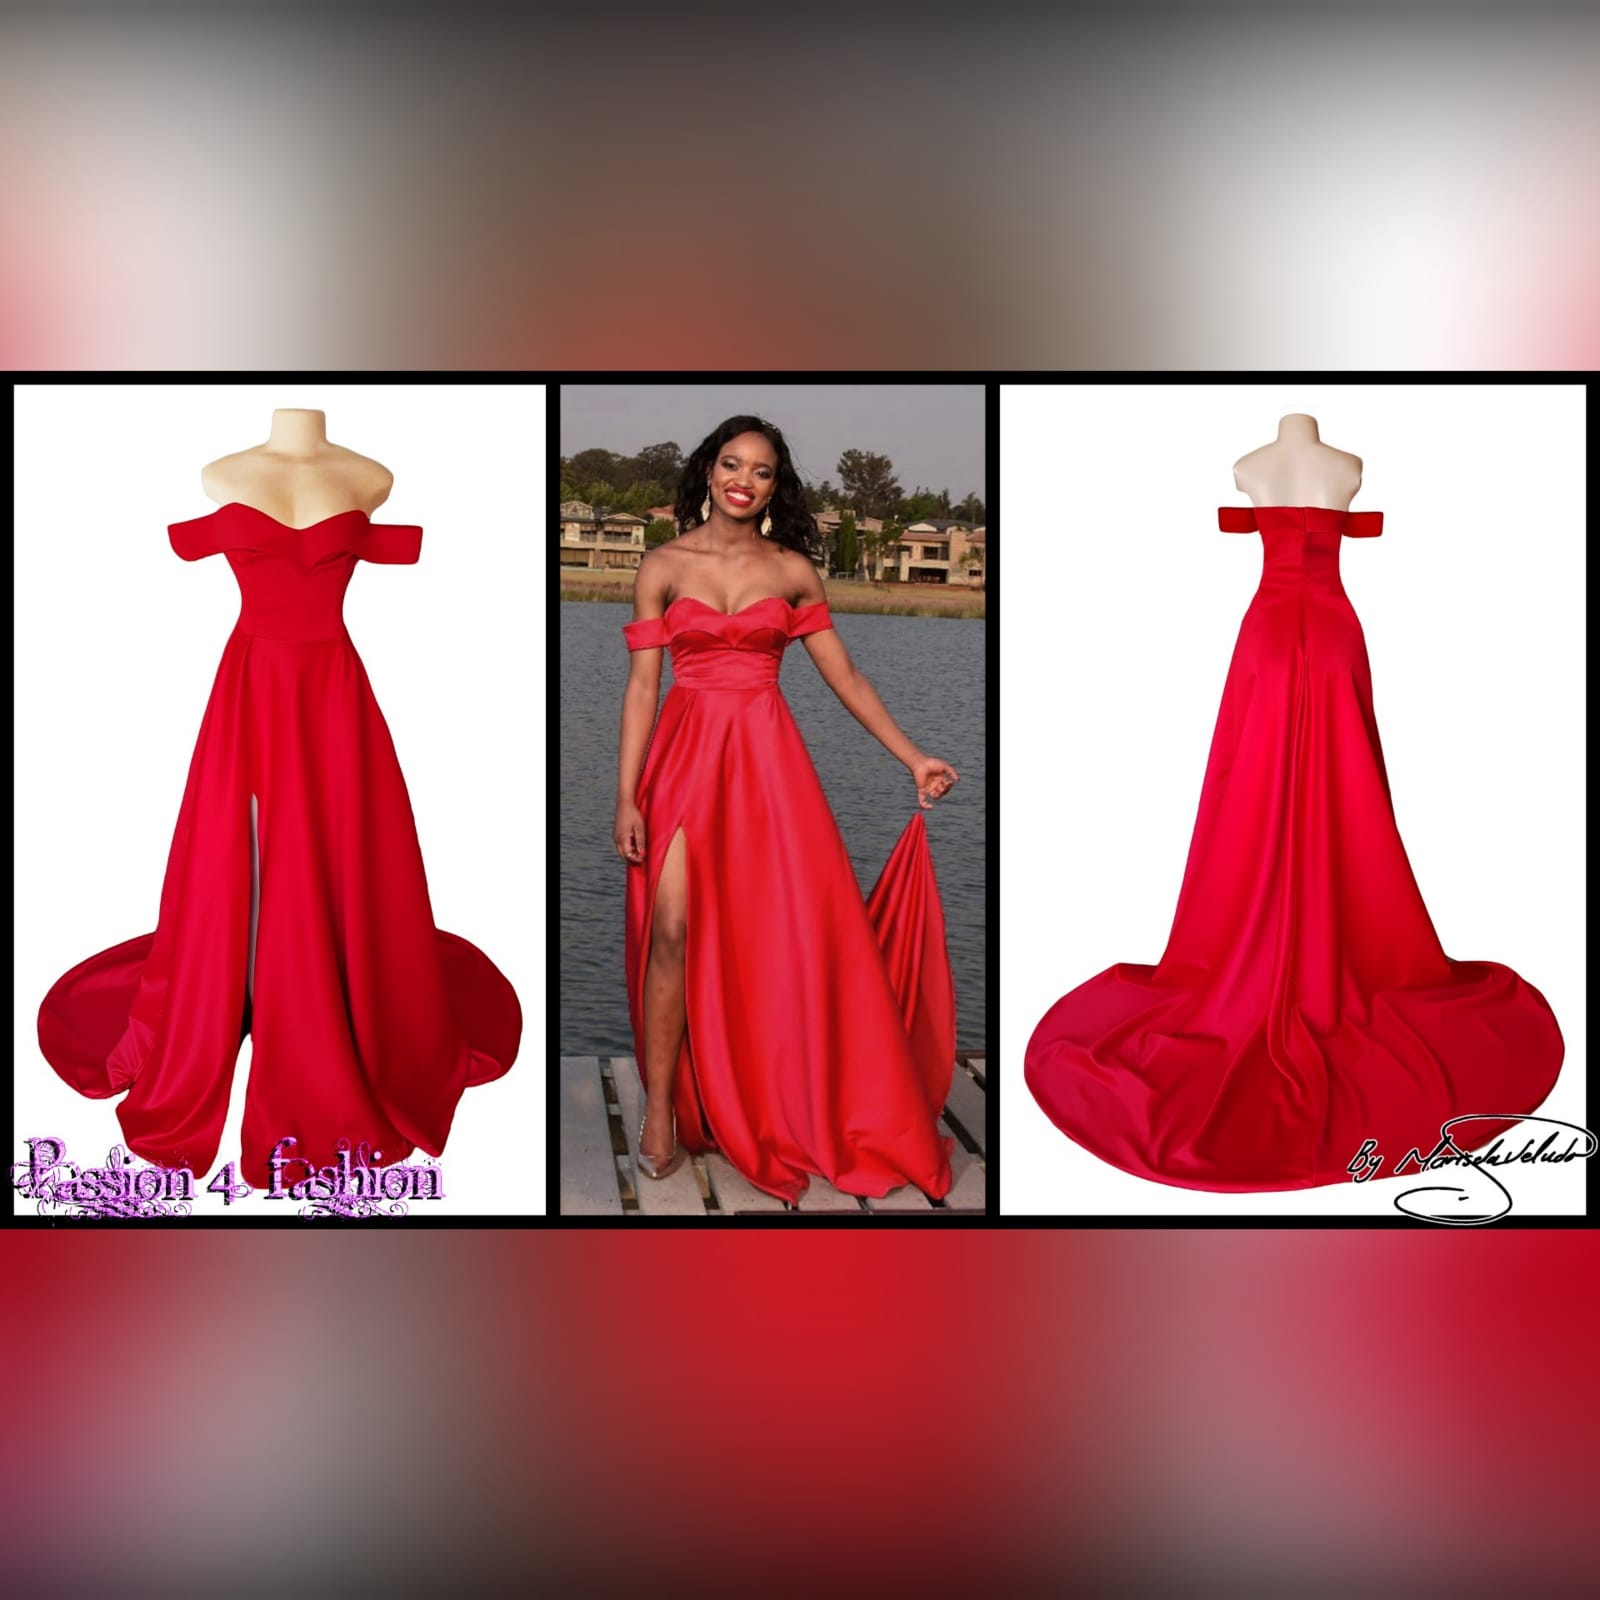 Red off shoulder flowy long prom dress 3 red off shoulder flowy long prom dress with a slit and a train